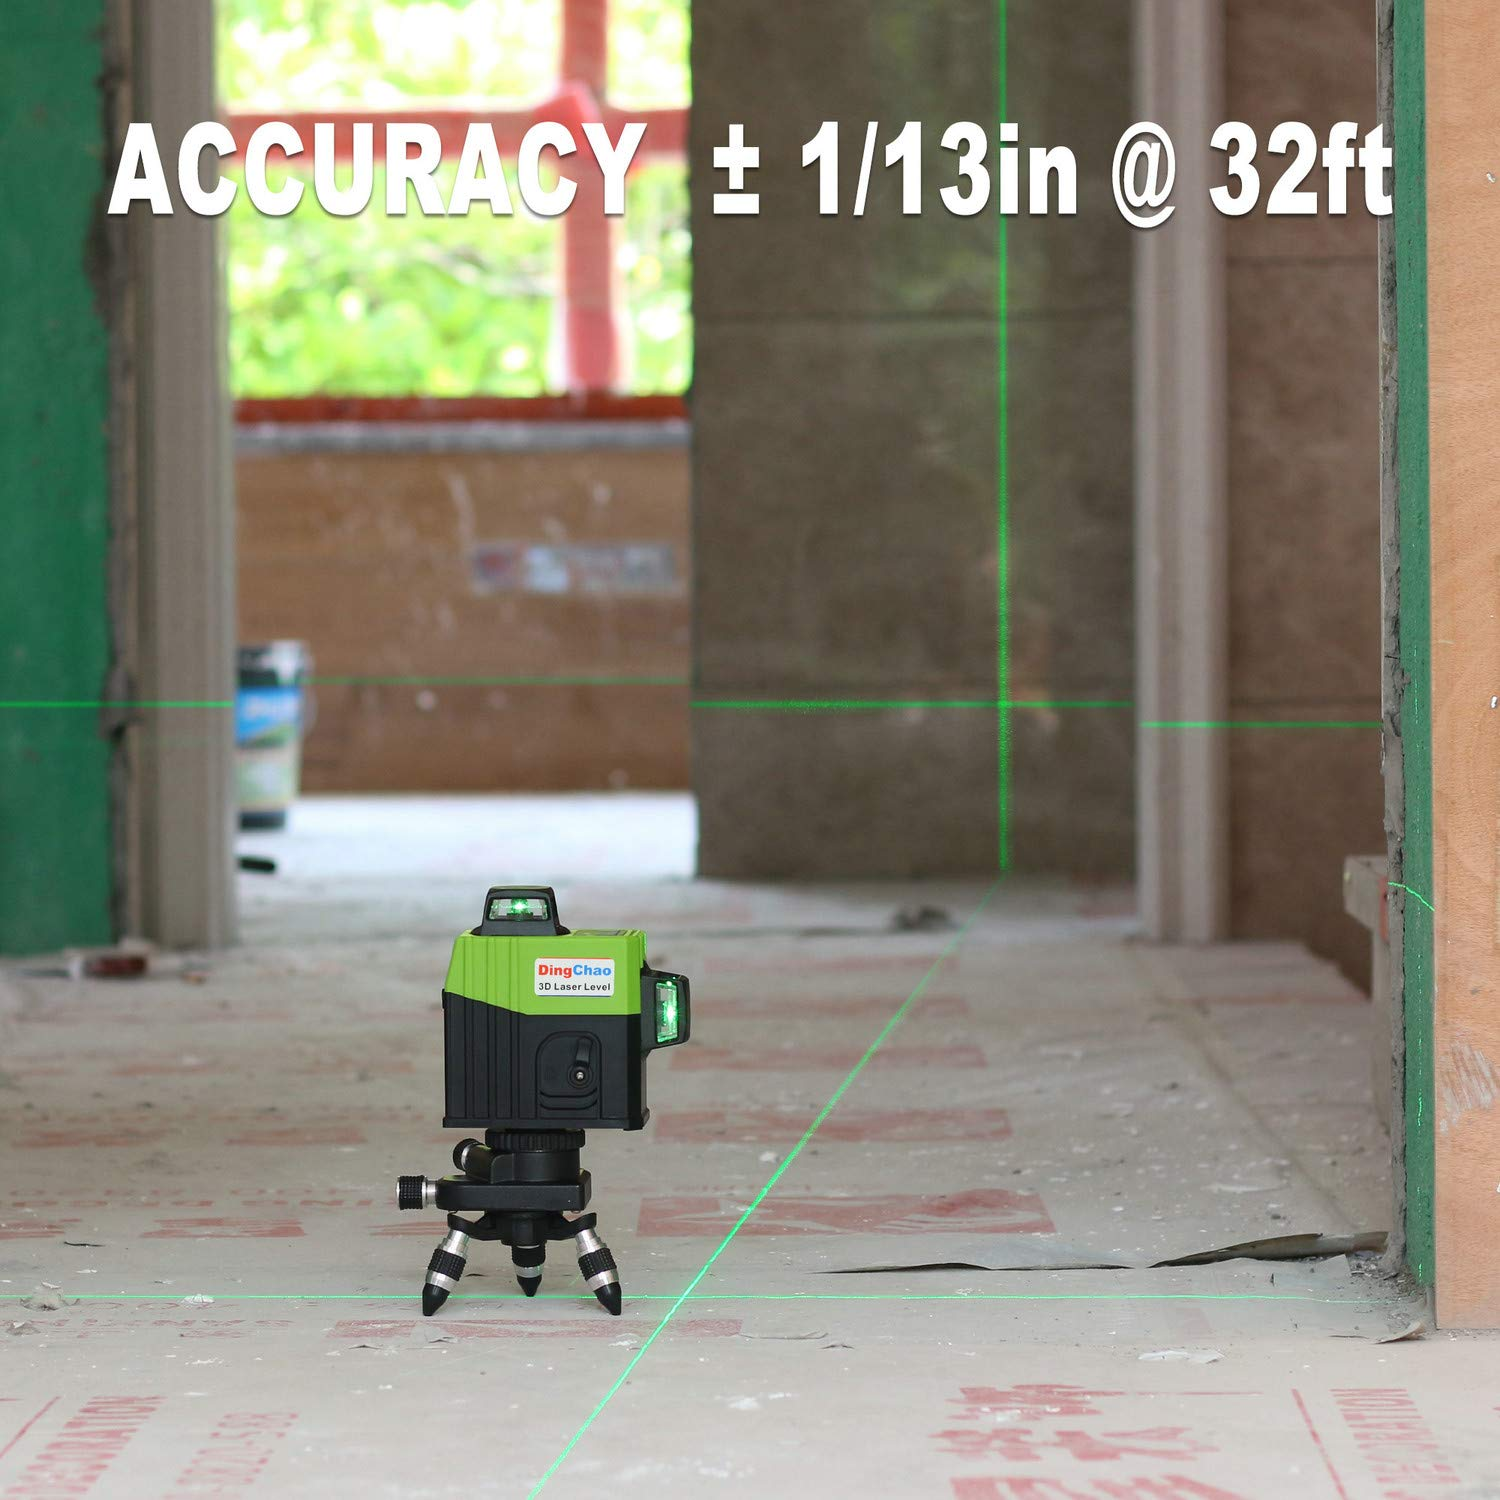 Dingchao Self-Leveling Three-Plane 3 x 360 Green Line Laser Level,with Micro-Adjust / 360 Degree Pivoting Base, Hard Carrying Case,Power Plug Adapter,Multi-functional Laser Leveler Layout Laser Tools by DINGCHAO (Image #8)